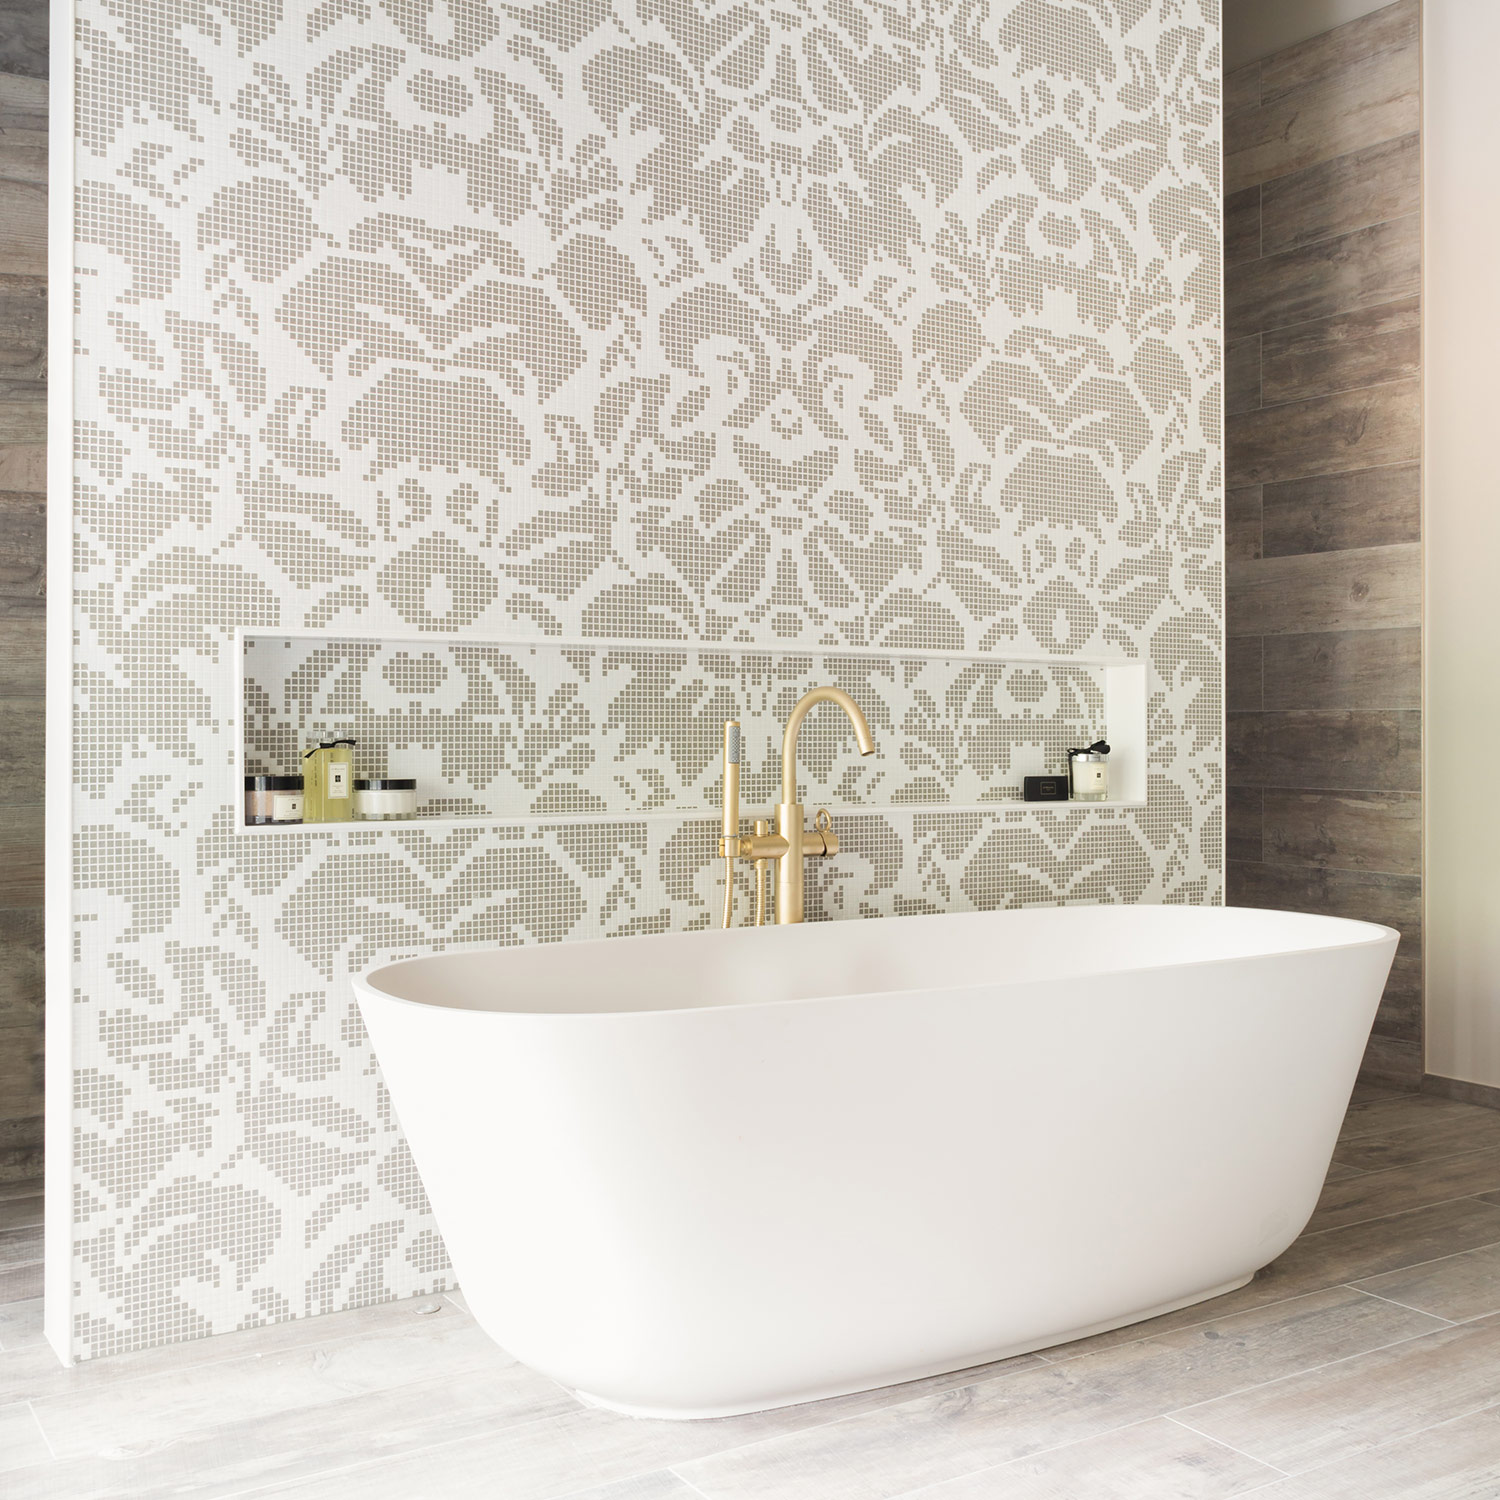 West One Bathrooms Case Studies: Oakdene (Featured)